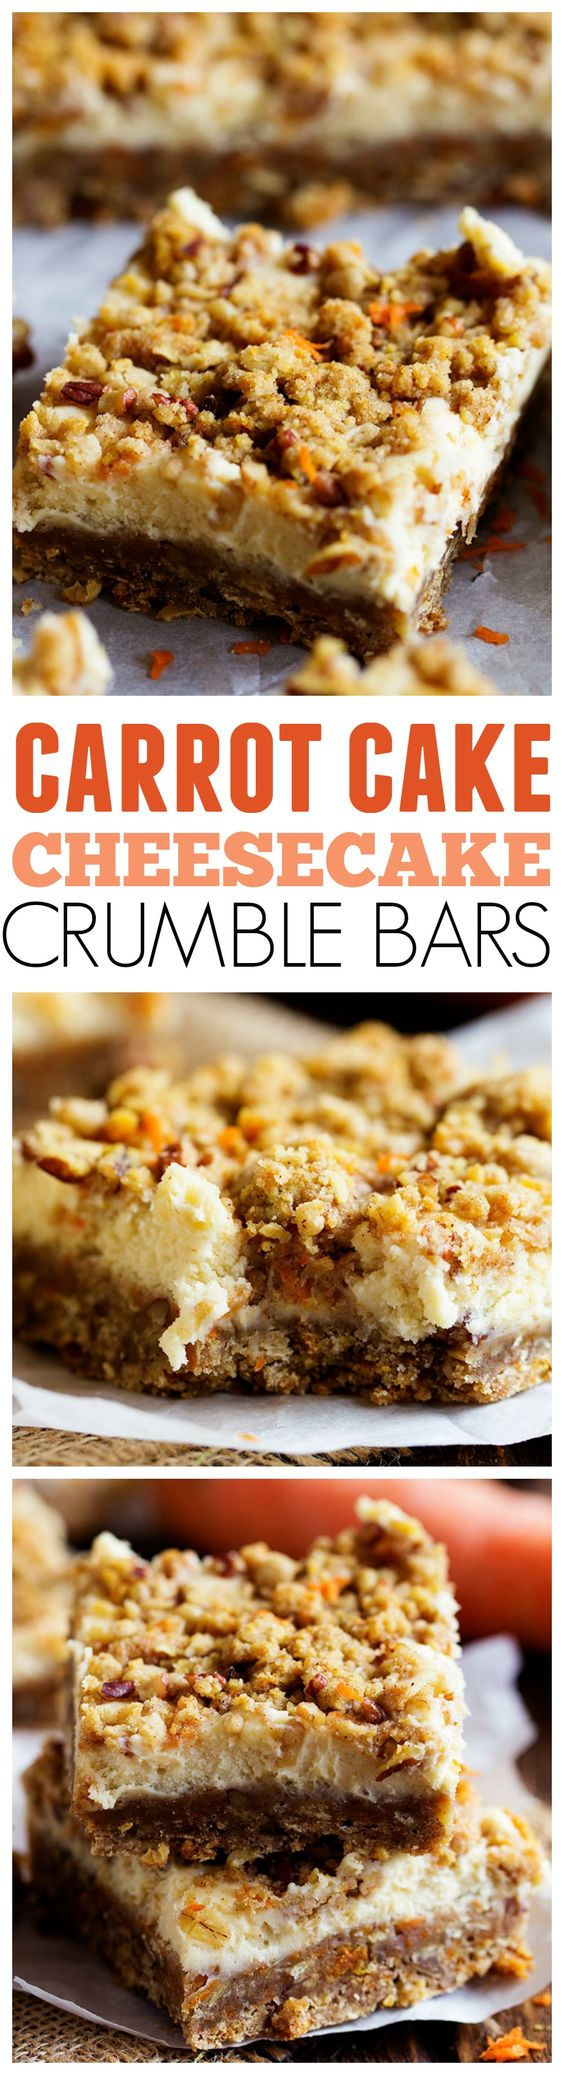 Carrot Cake Cheesecake Crumble Bars Dessert Recipe via The Recipe Critic - Amazing Carrot Cake Cheesecake Crumble Bars that will be one of the BEST desserts that you have!